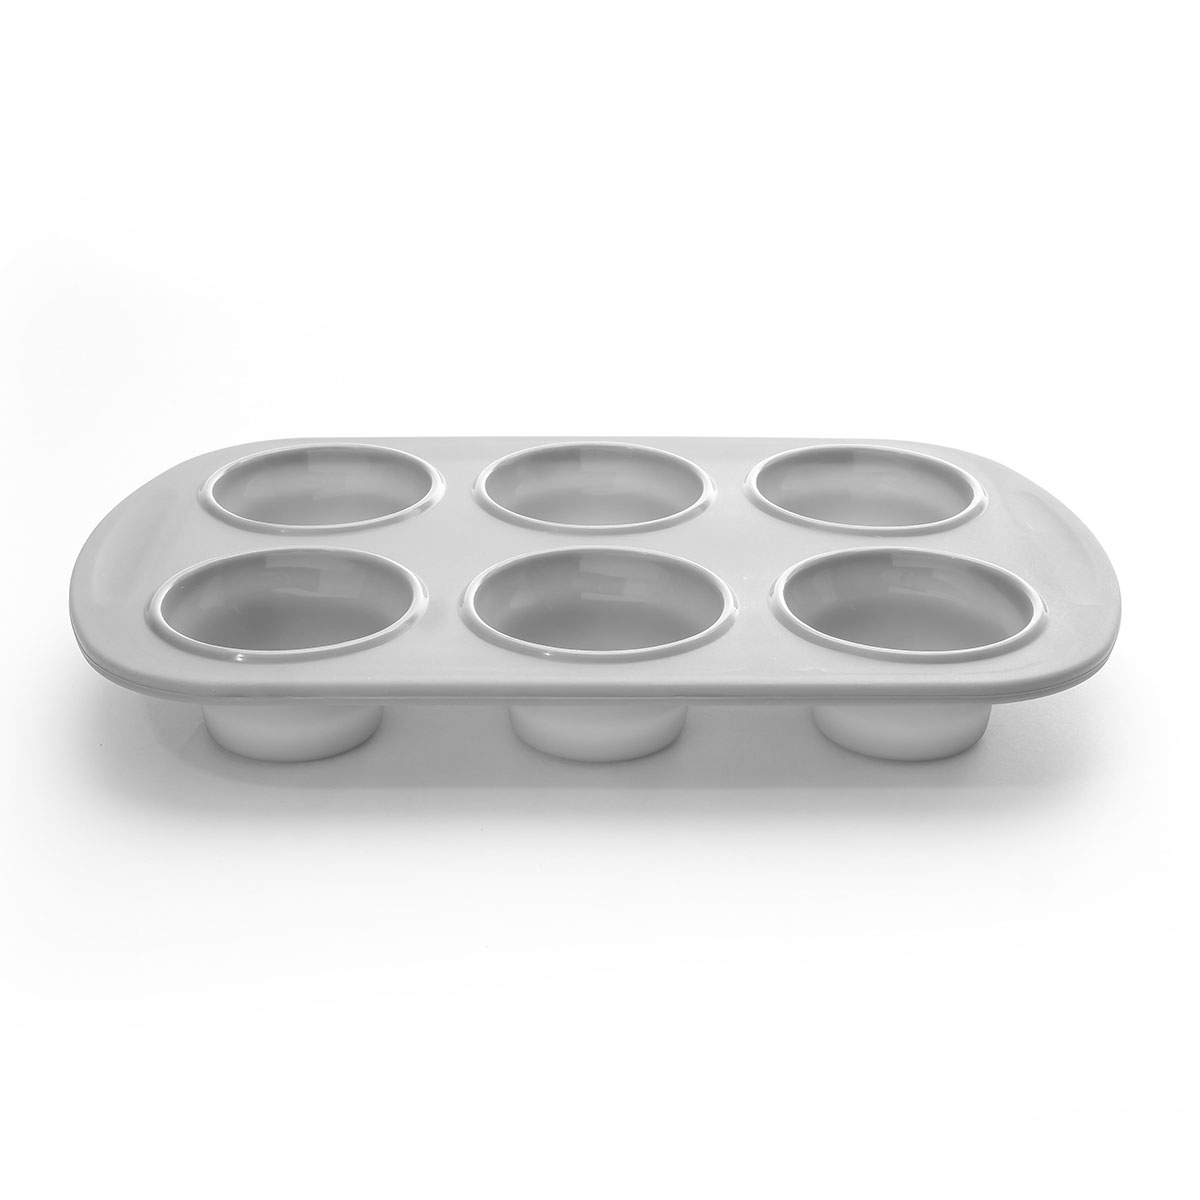 Cook-039-s-Companion-4-Piece-Collapsible-Silicone-Bakeware-Set thumbnail 7